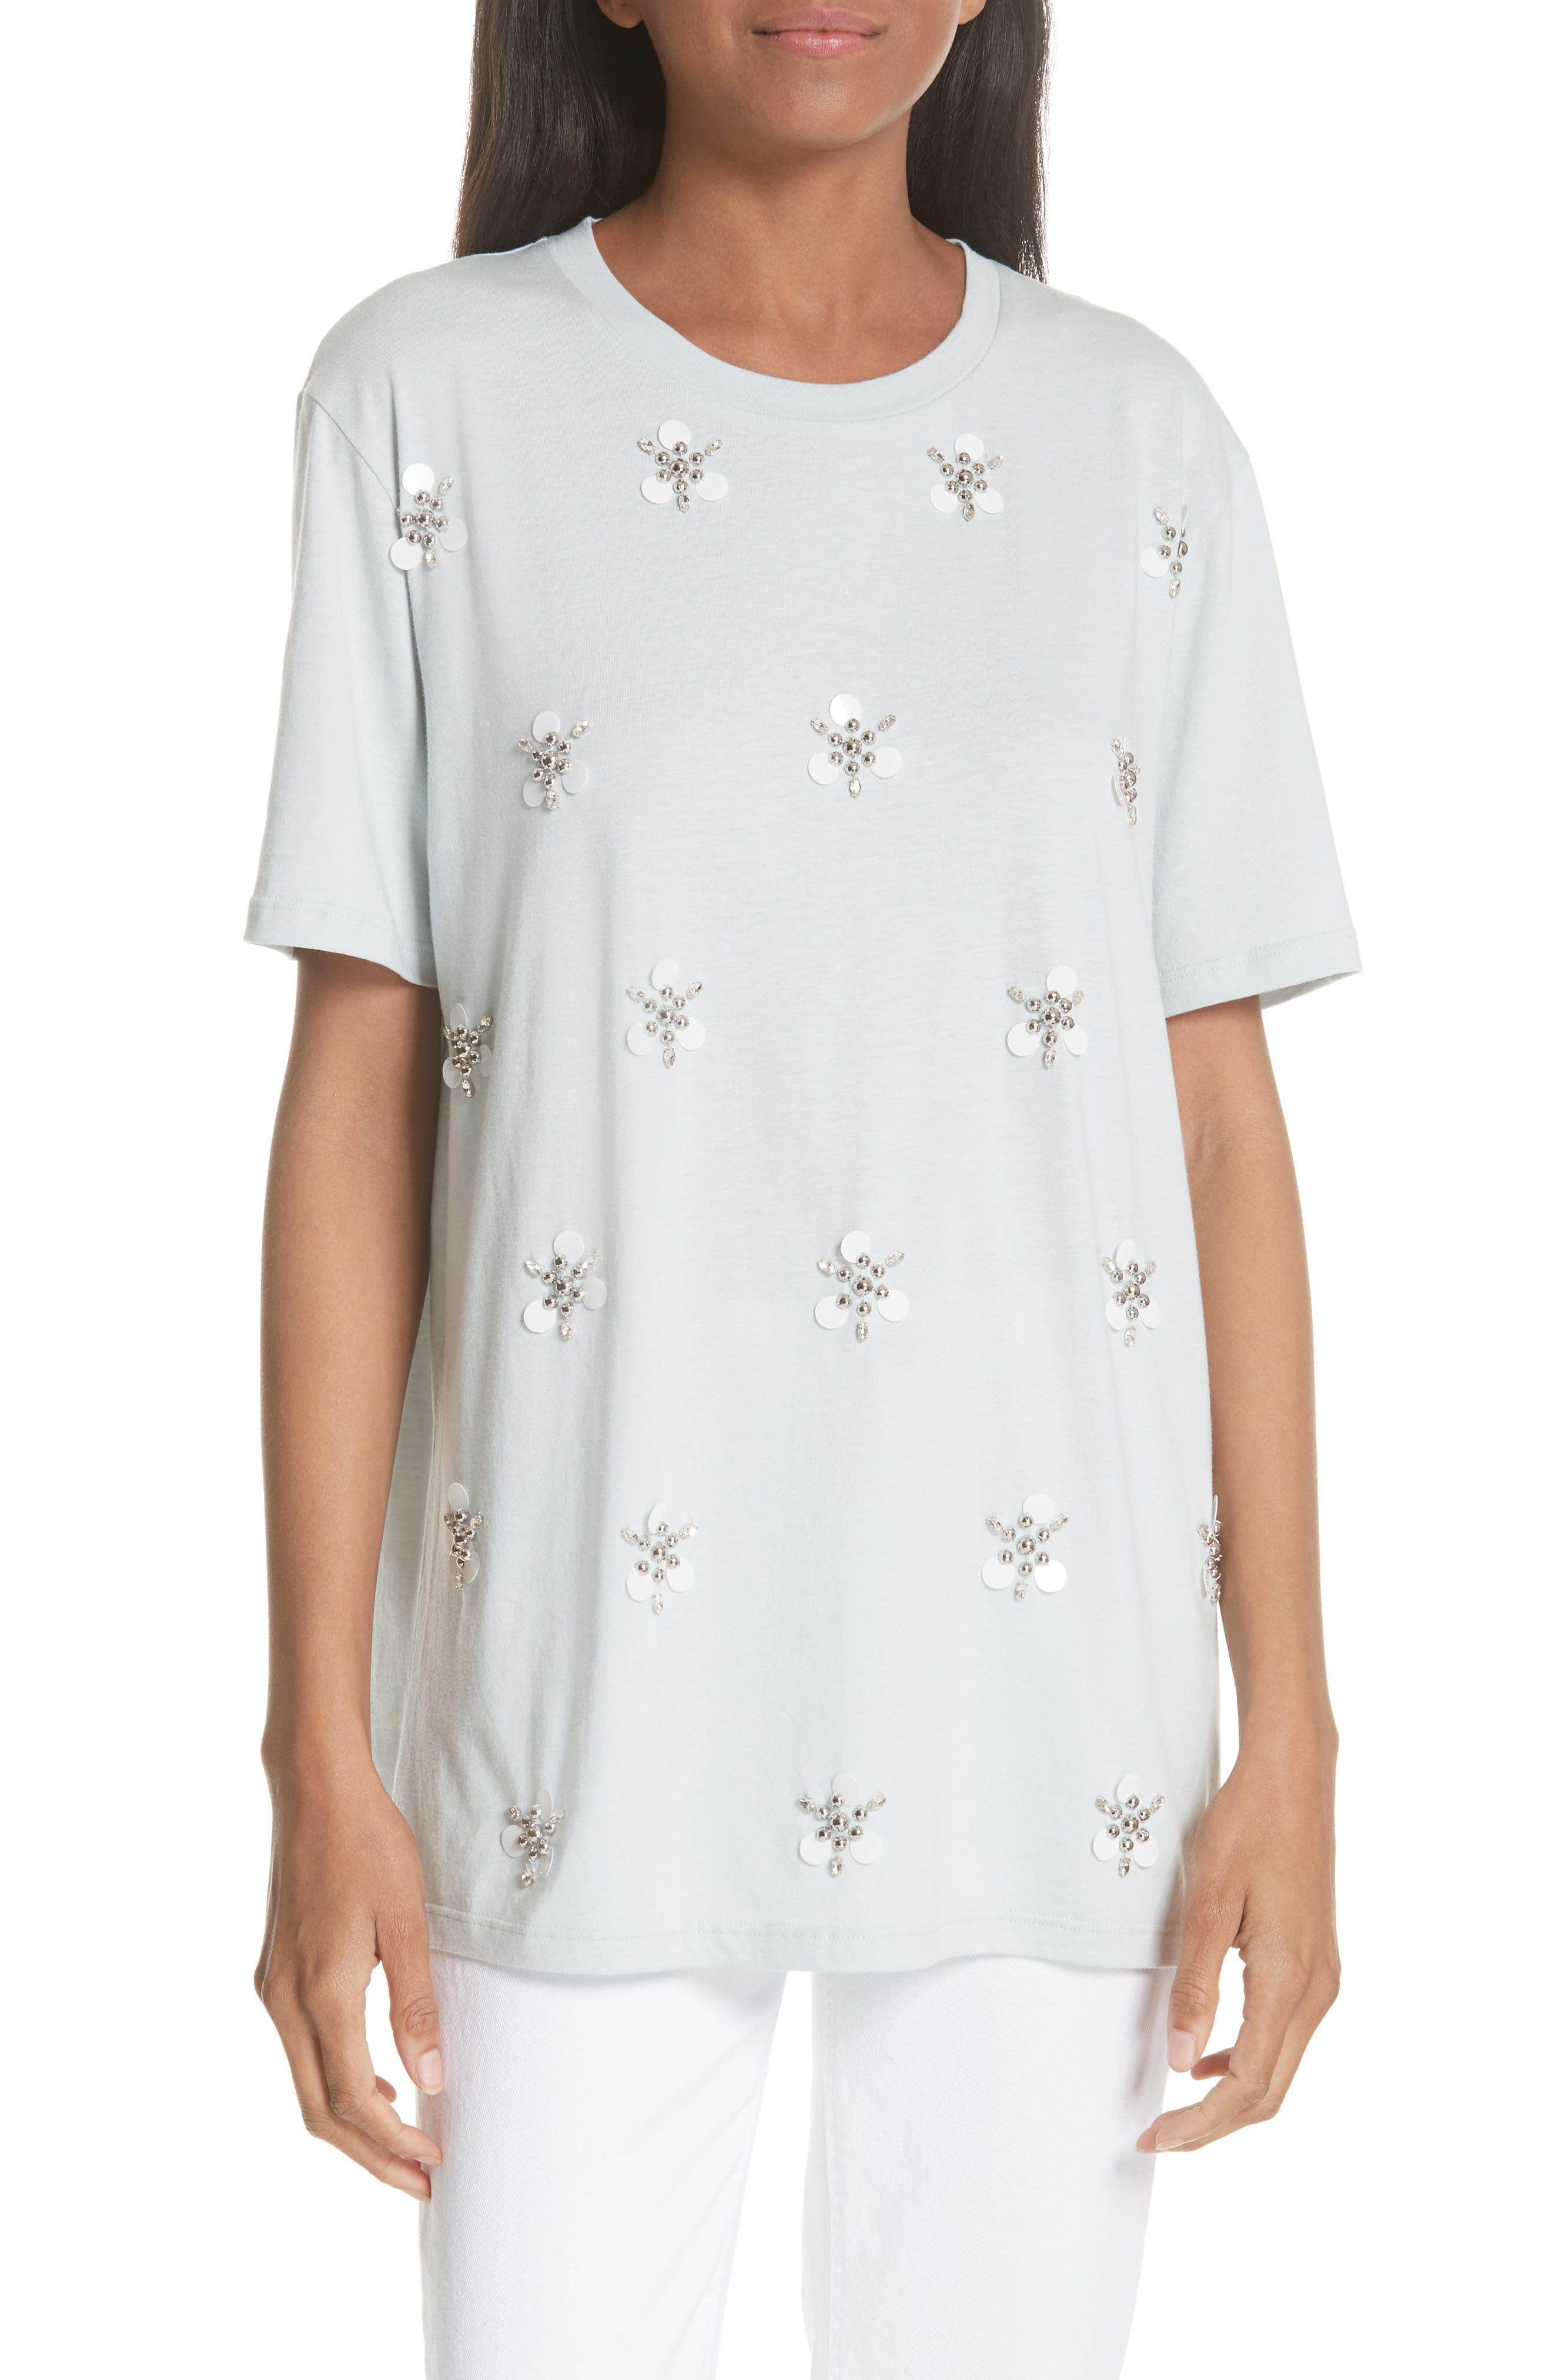 sandro Beaded Blossoms Cotton Blend Tee